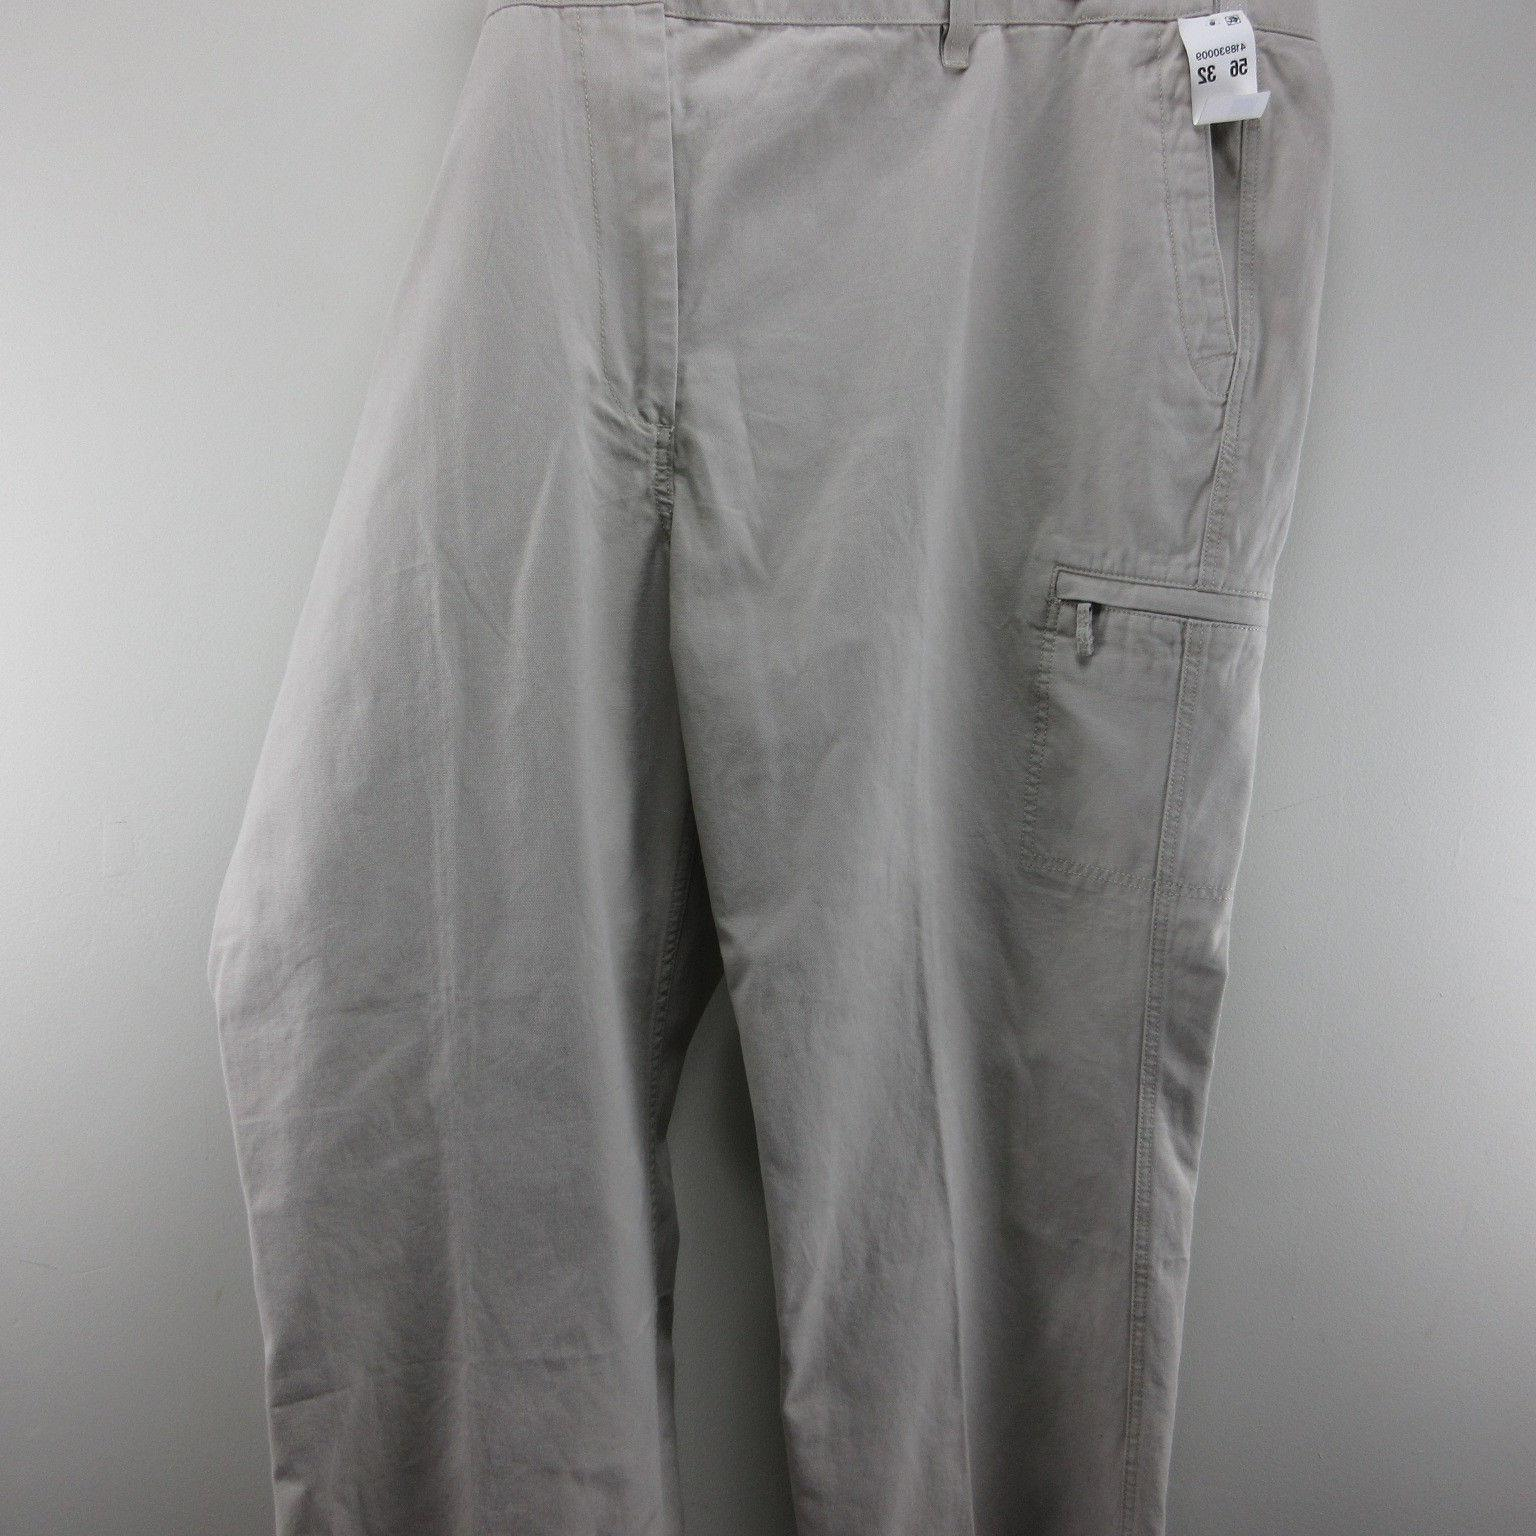 Mens Khaki Dockers Big Tall Pants Cargo Tan W L 32 Comfort In NWT